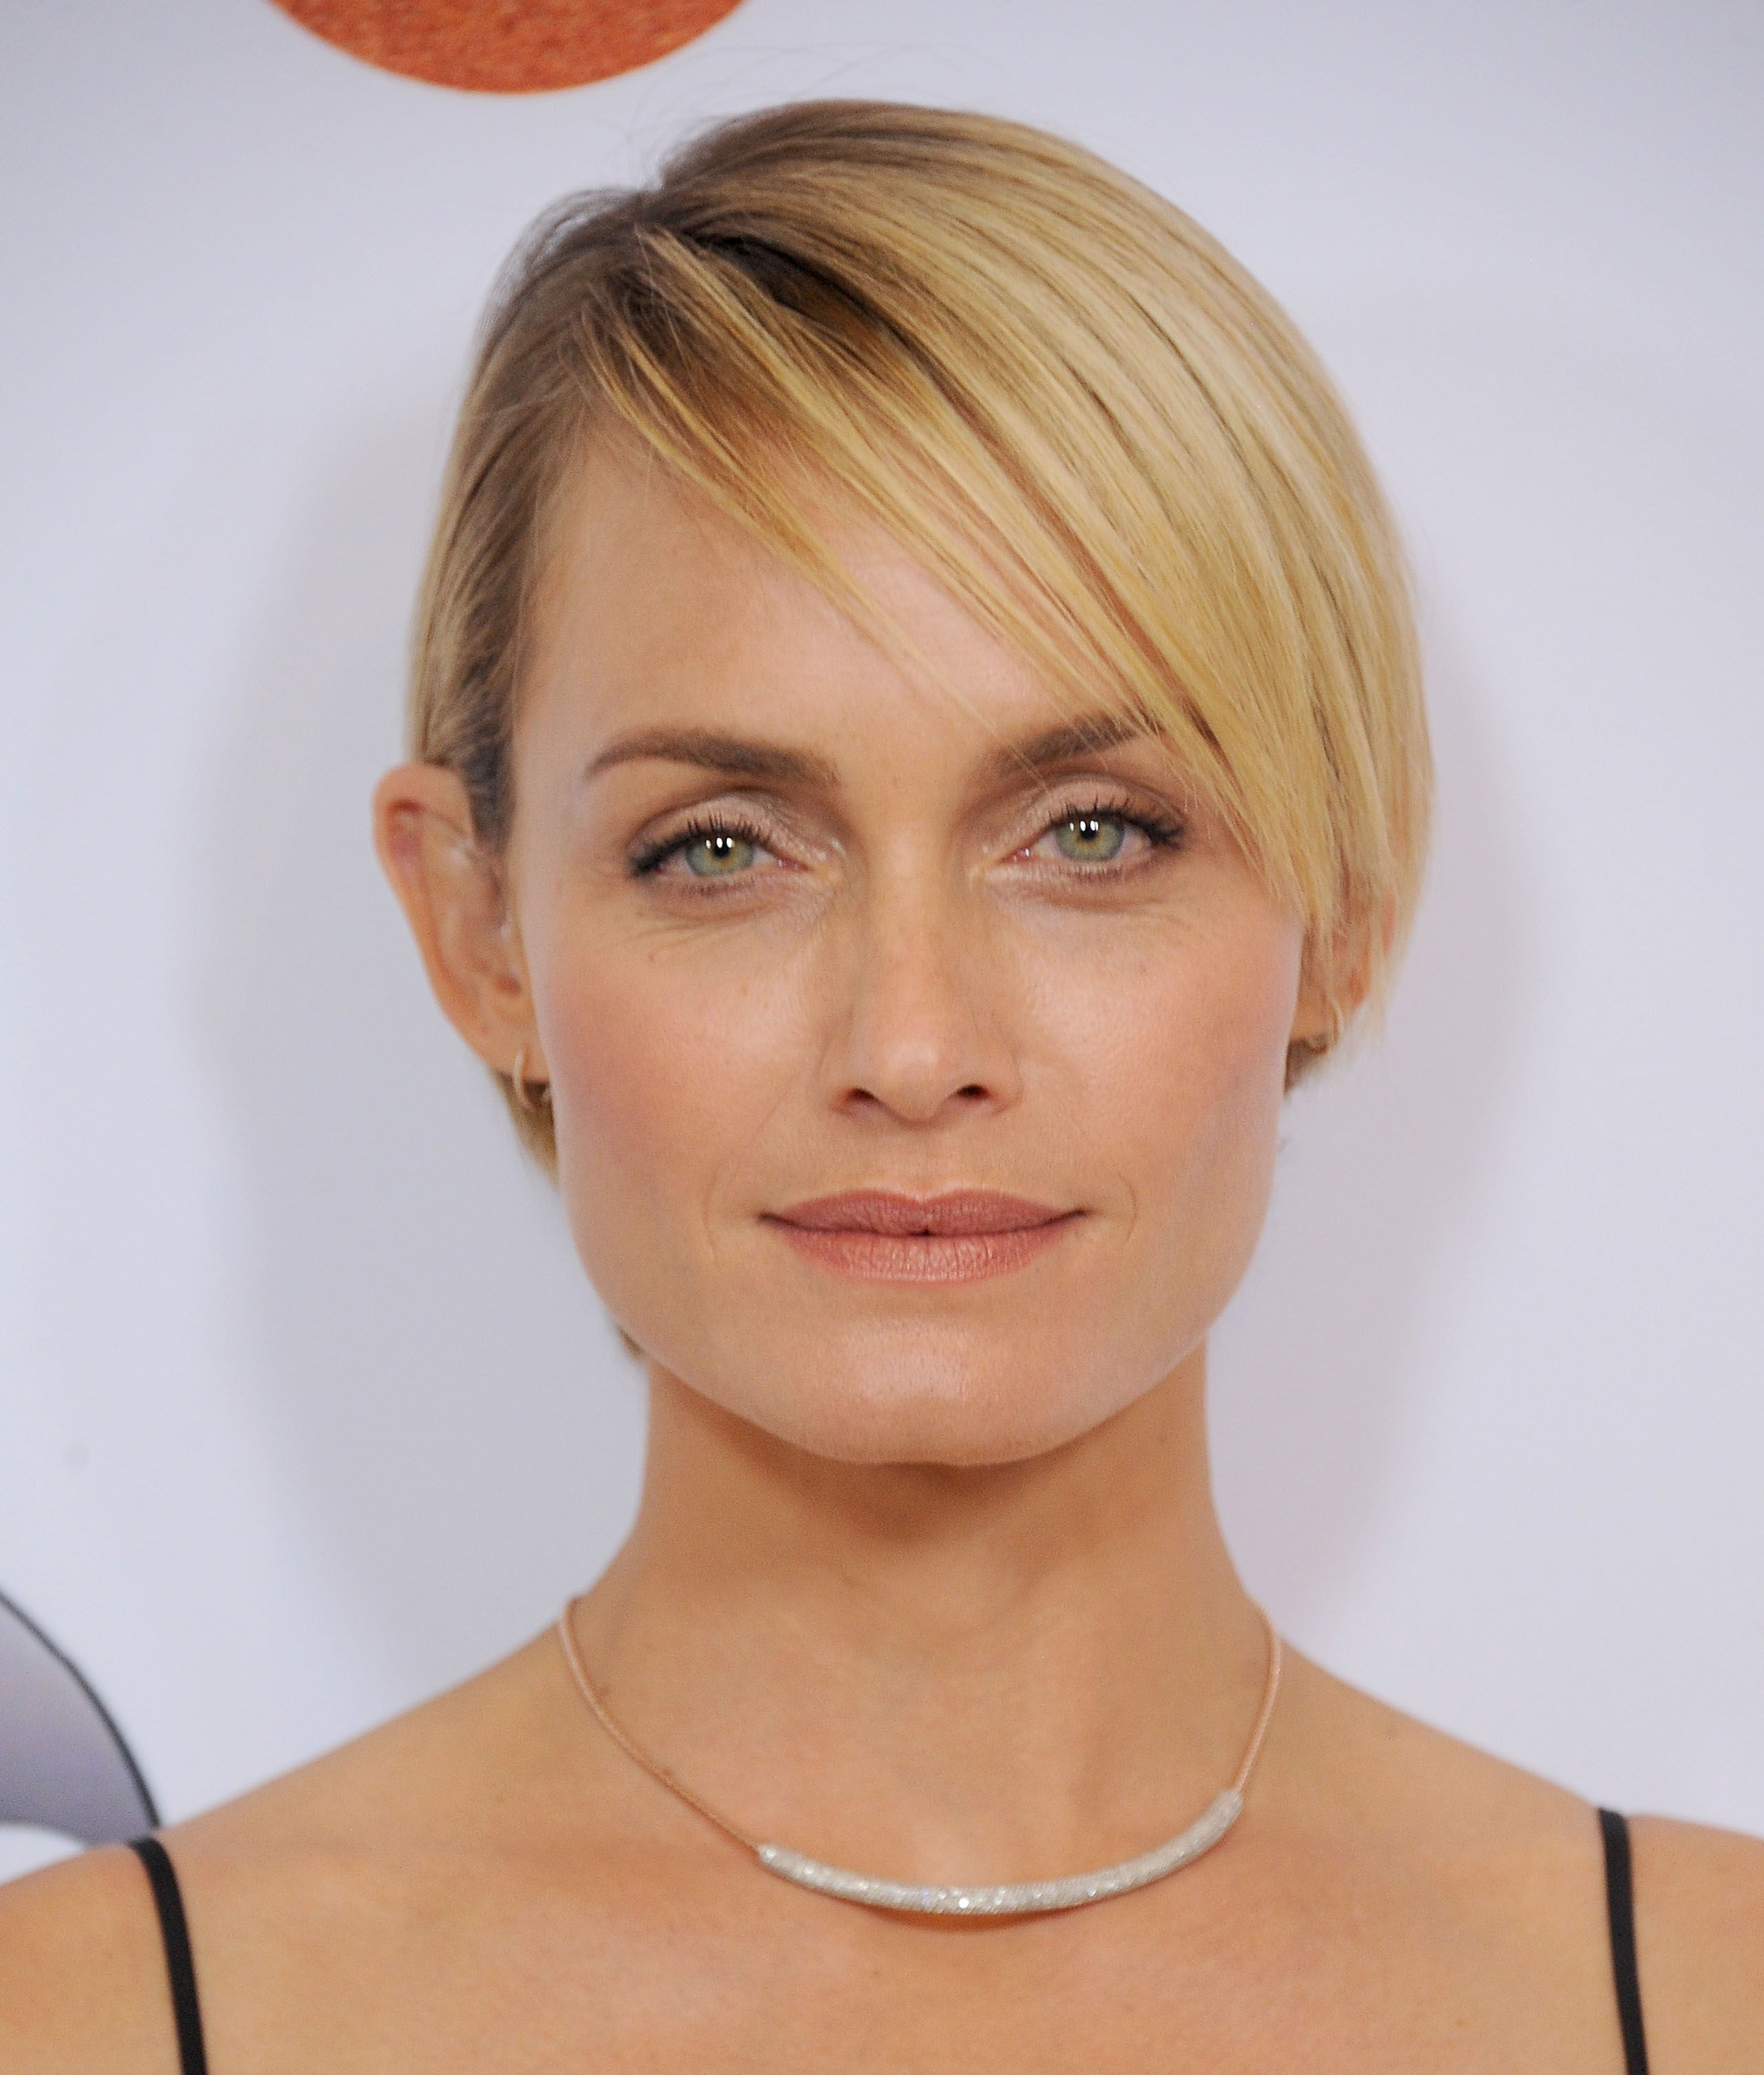 65 Best Short Hairstyles, Haircuts, And Short Hair Ideas For 2018 Pertaining To Short Hairstyles For Women Over 40 With Thin Hair (Gallery 22 of 25)